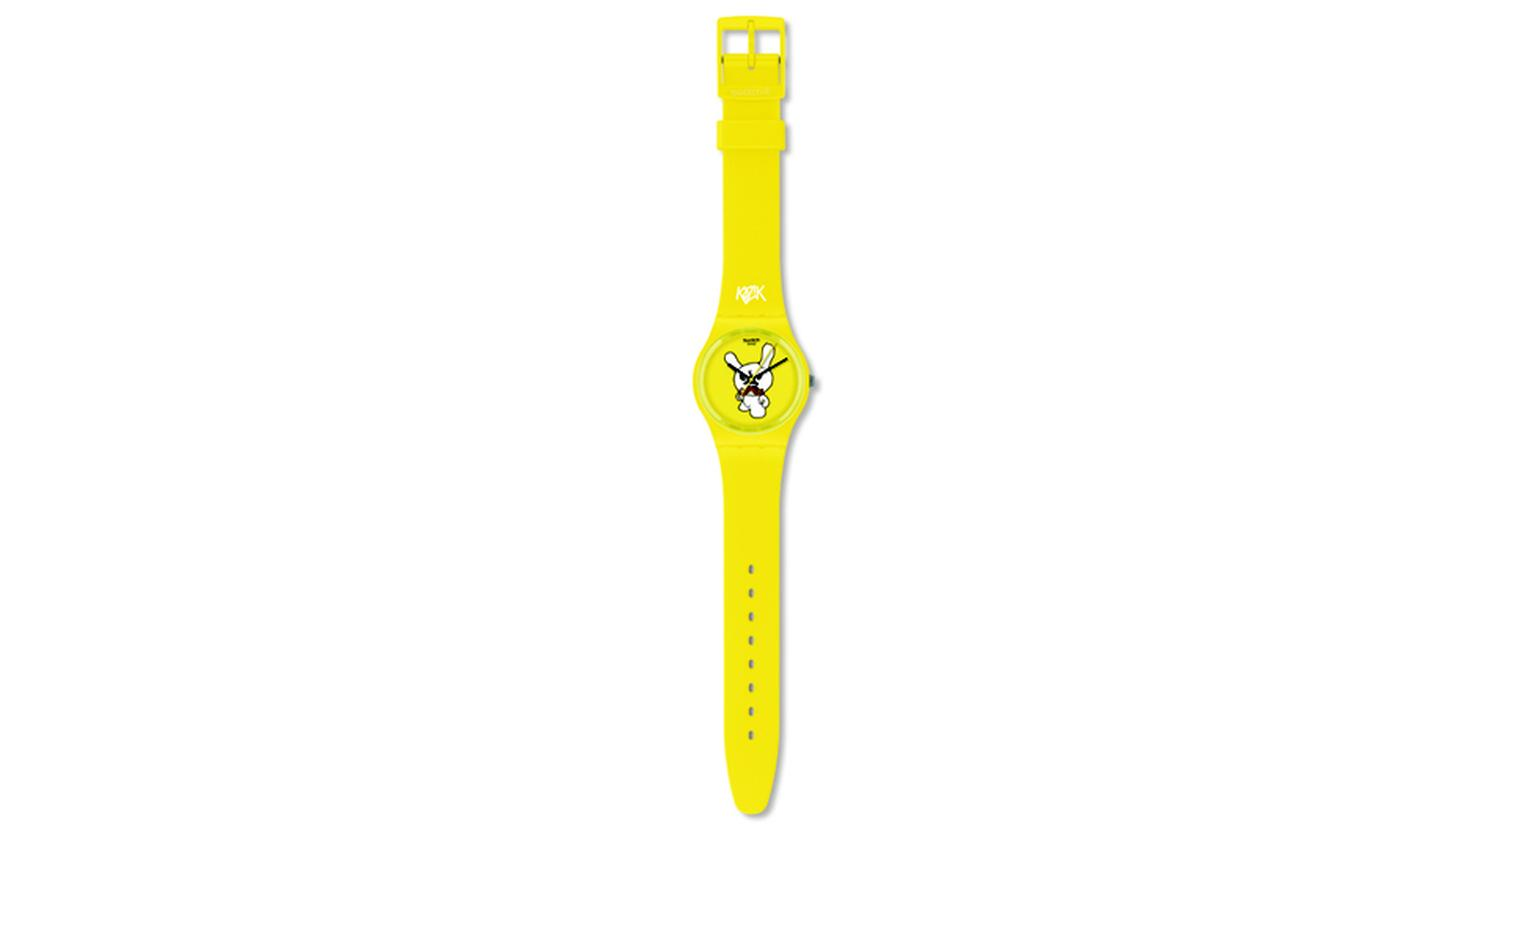 699 x 3493SWATCH AND KIDROBOT. Swatch, Ski Instructor. Artist: Frank Kozik. Price from £44.50